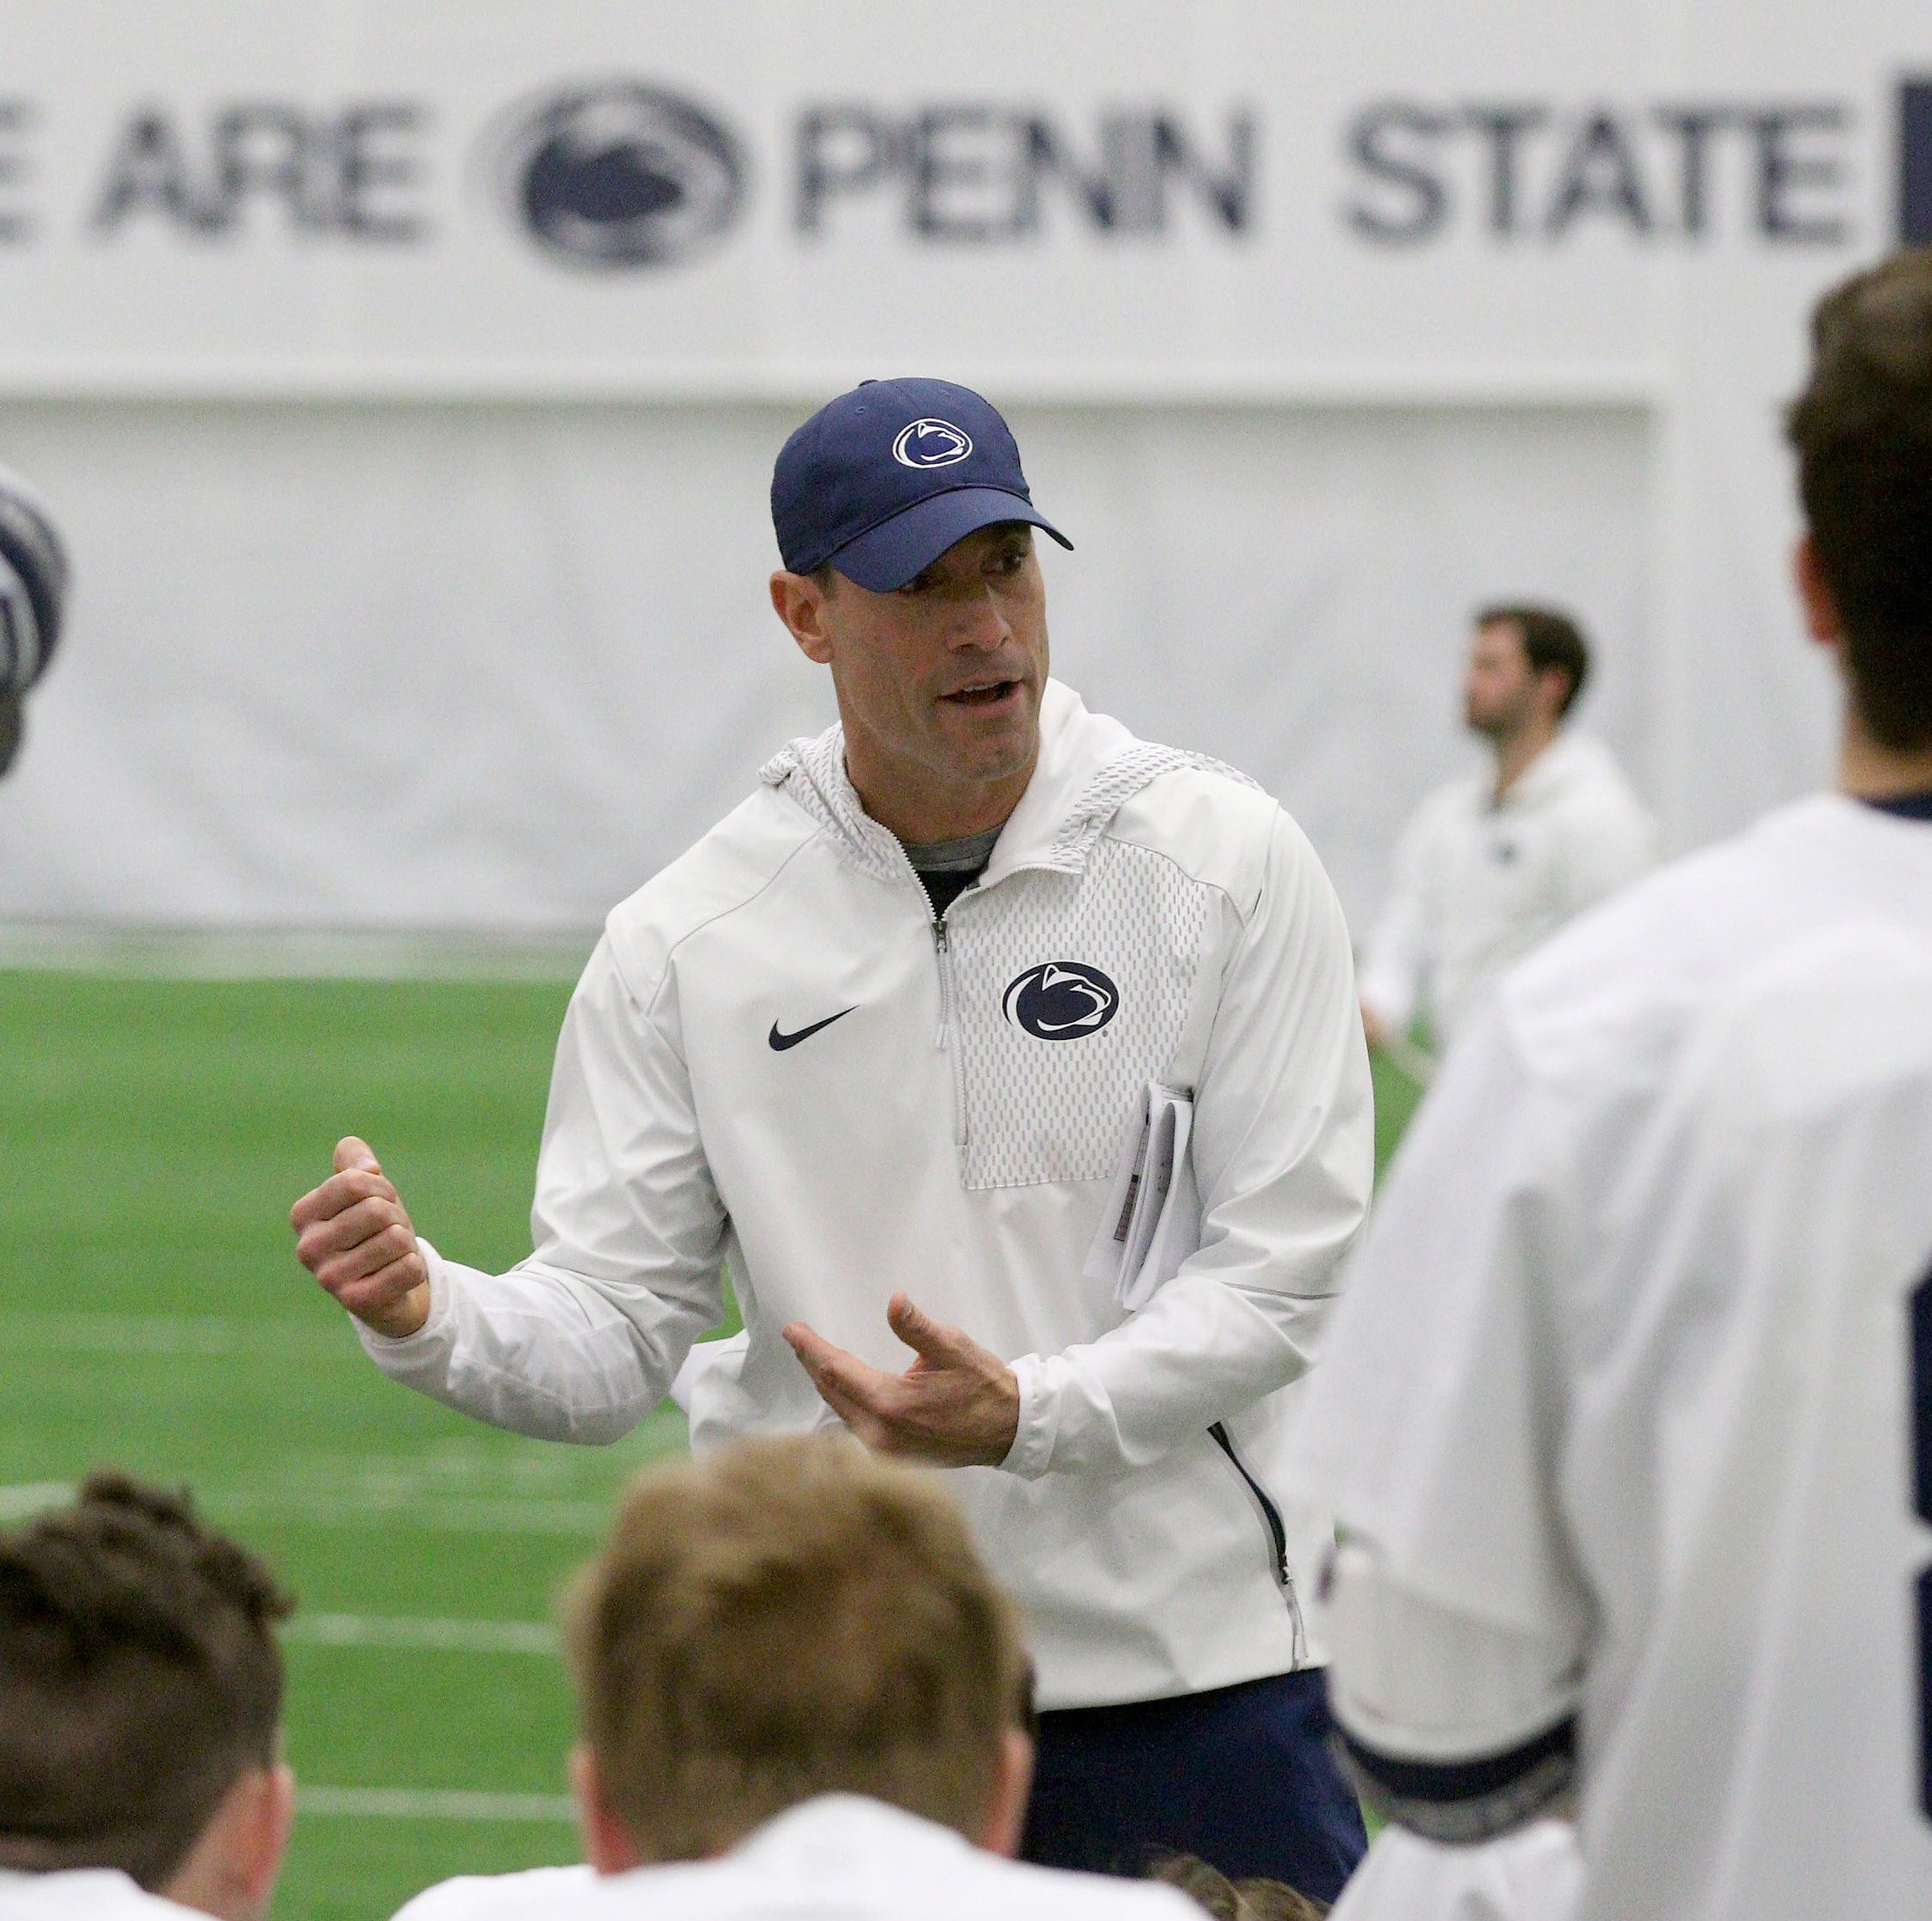 HEISER: Here's a story that deserves notice from Penn State fans and lacrosse lovers